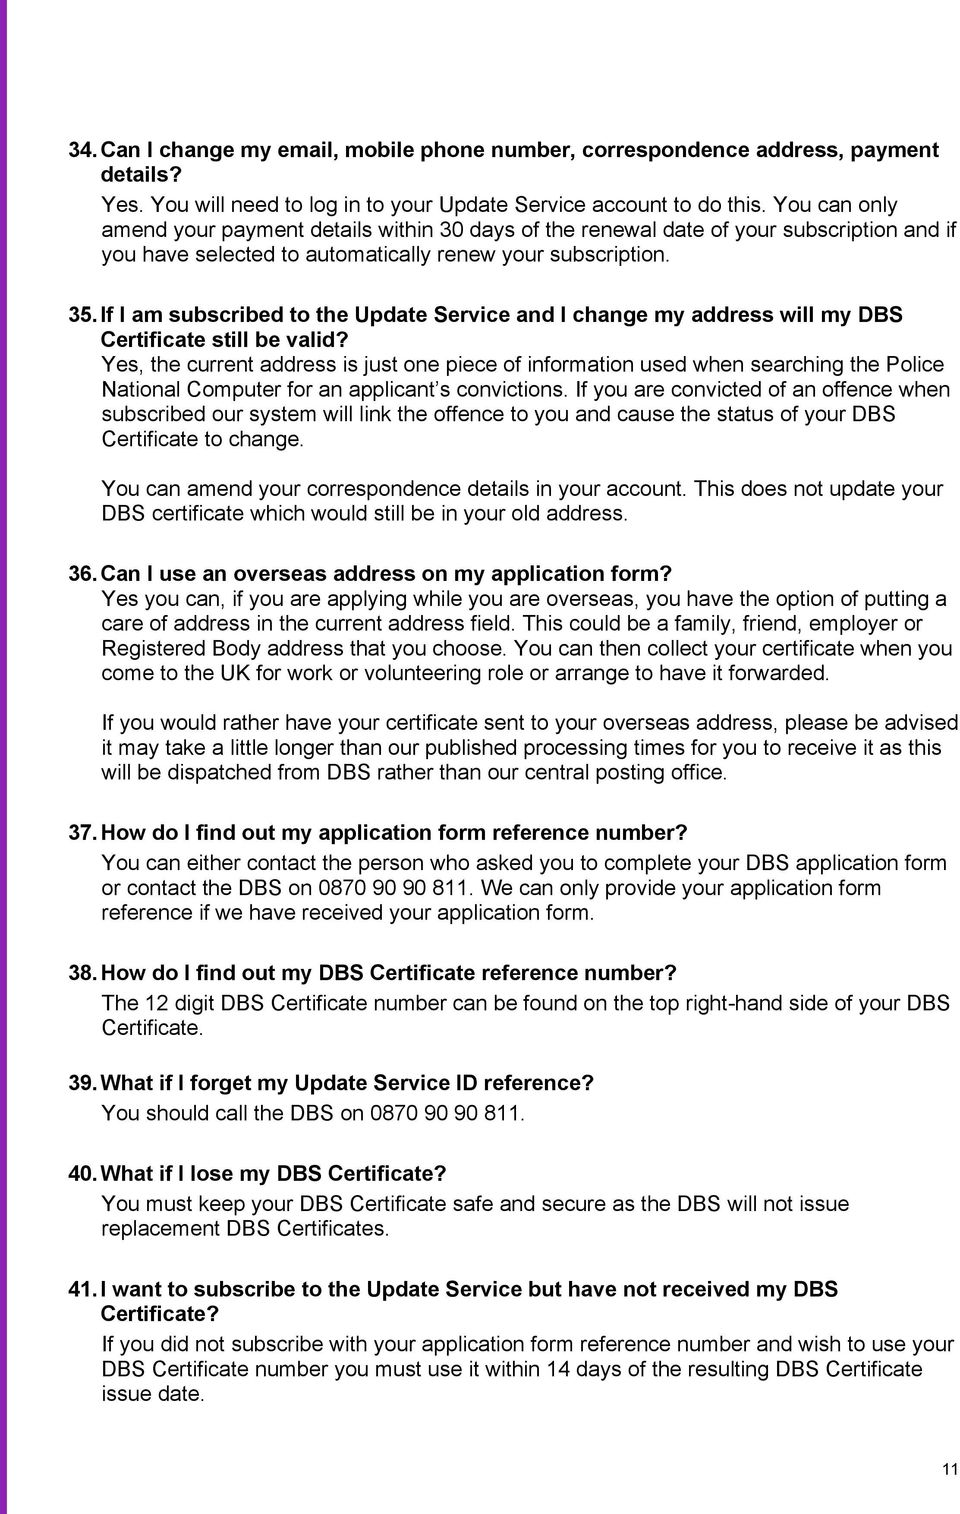 If I am subscribed to the Update Service and I change my address will my DBS Certificate still be valid?